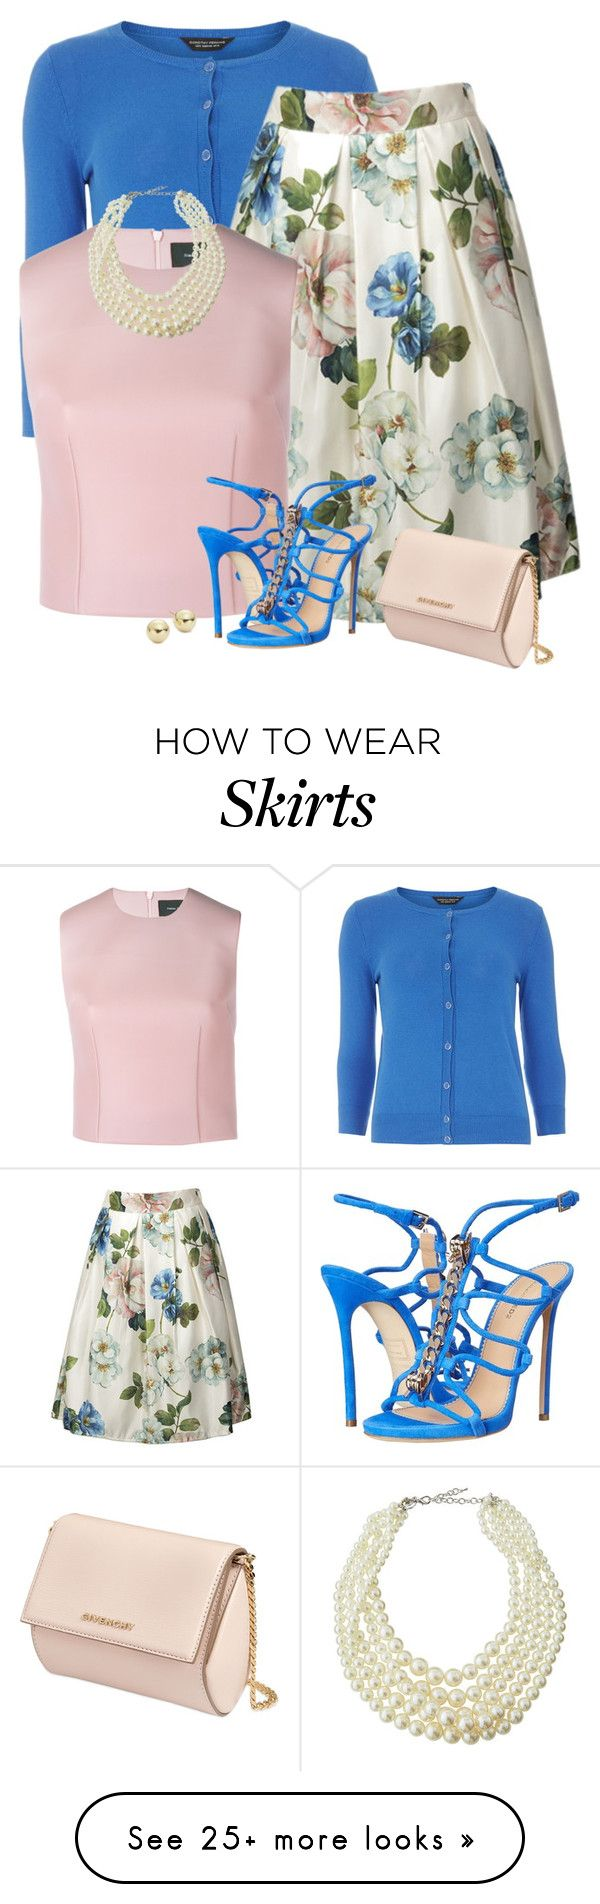 """""""Saturday"""" by divacrafts on Polyvore featuring Dorothy Perkins, Simone Rocha, Dsquared2, Givenchy, Emily & Ashley, Lord & Taylor and Original"""